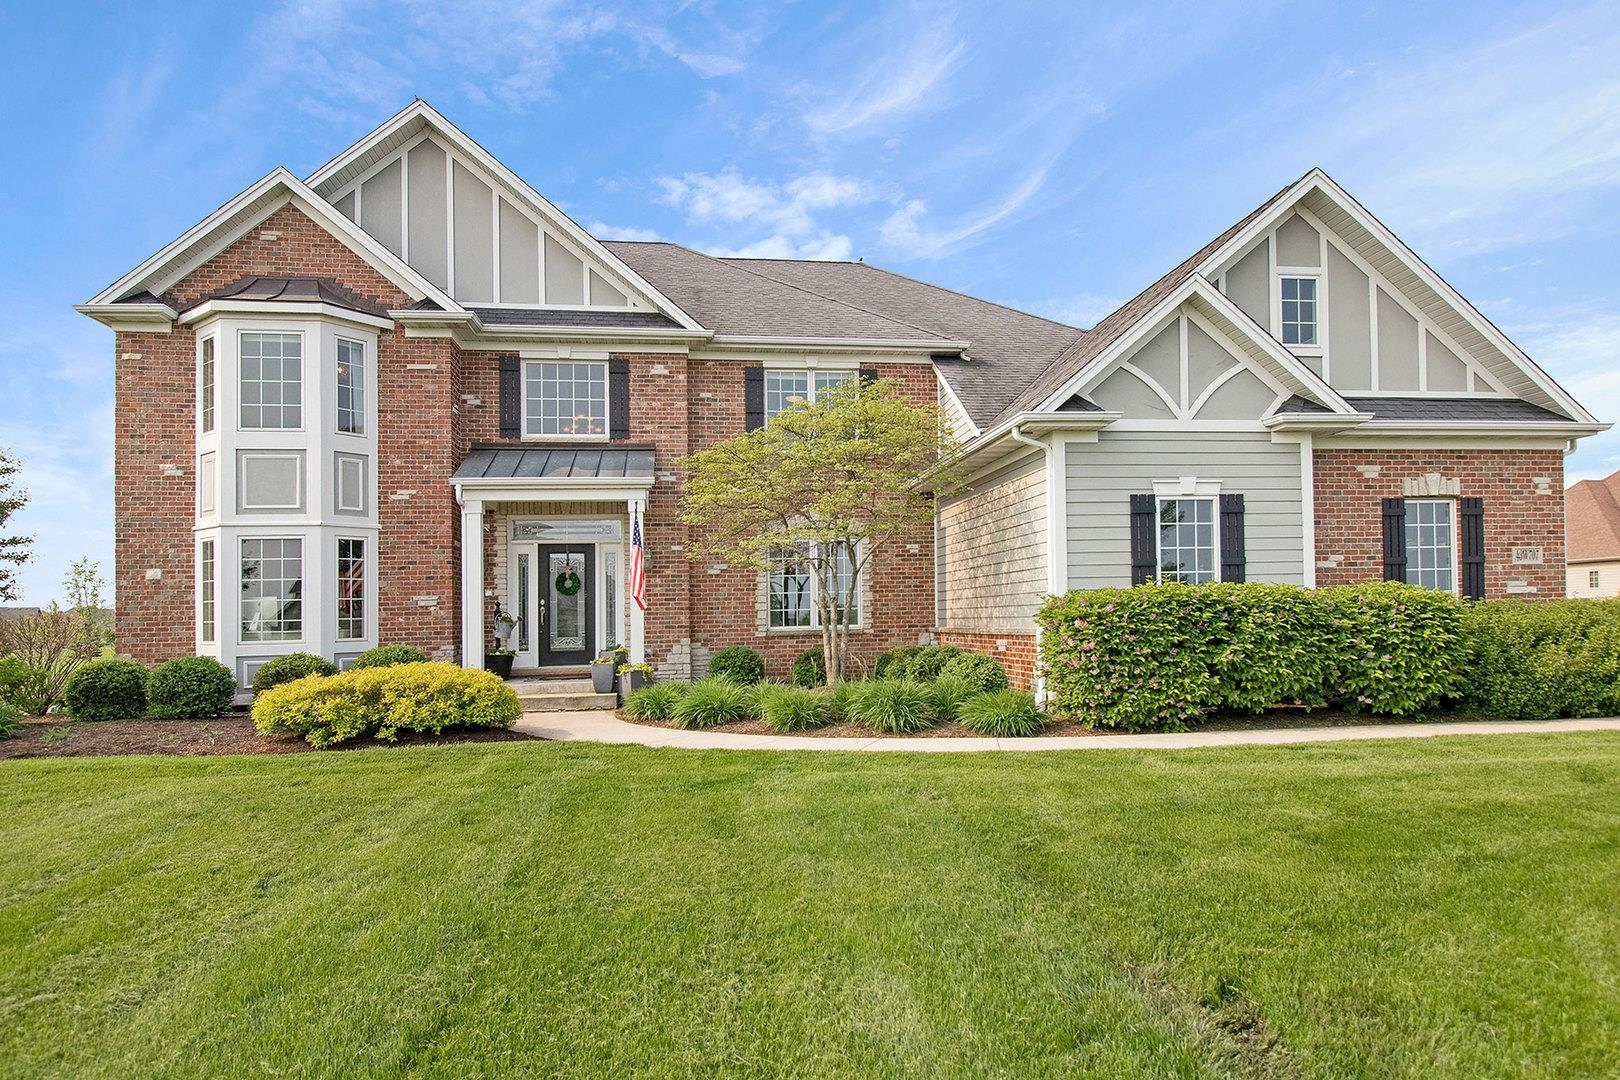 43W707 N Sunset Views Drive, Saint Charles, IL 60175 - #: 10680065